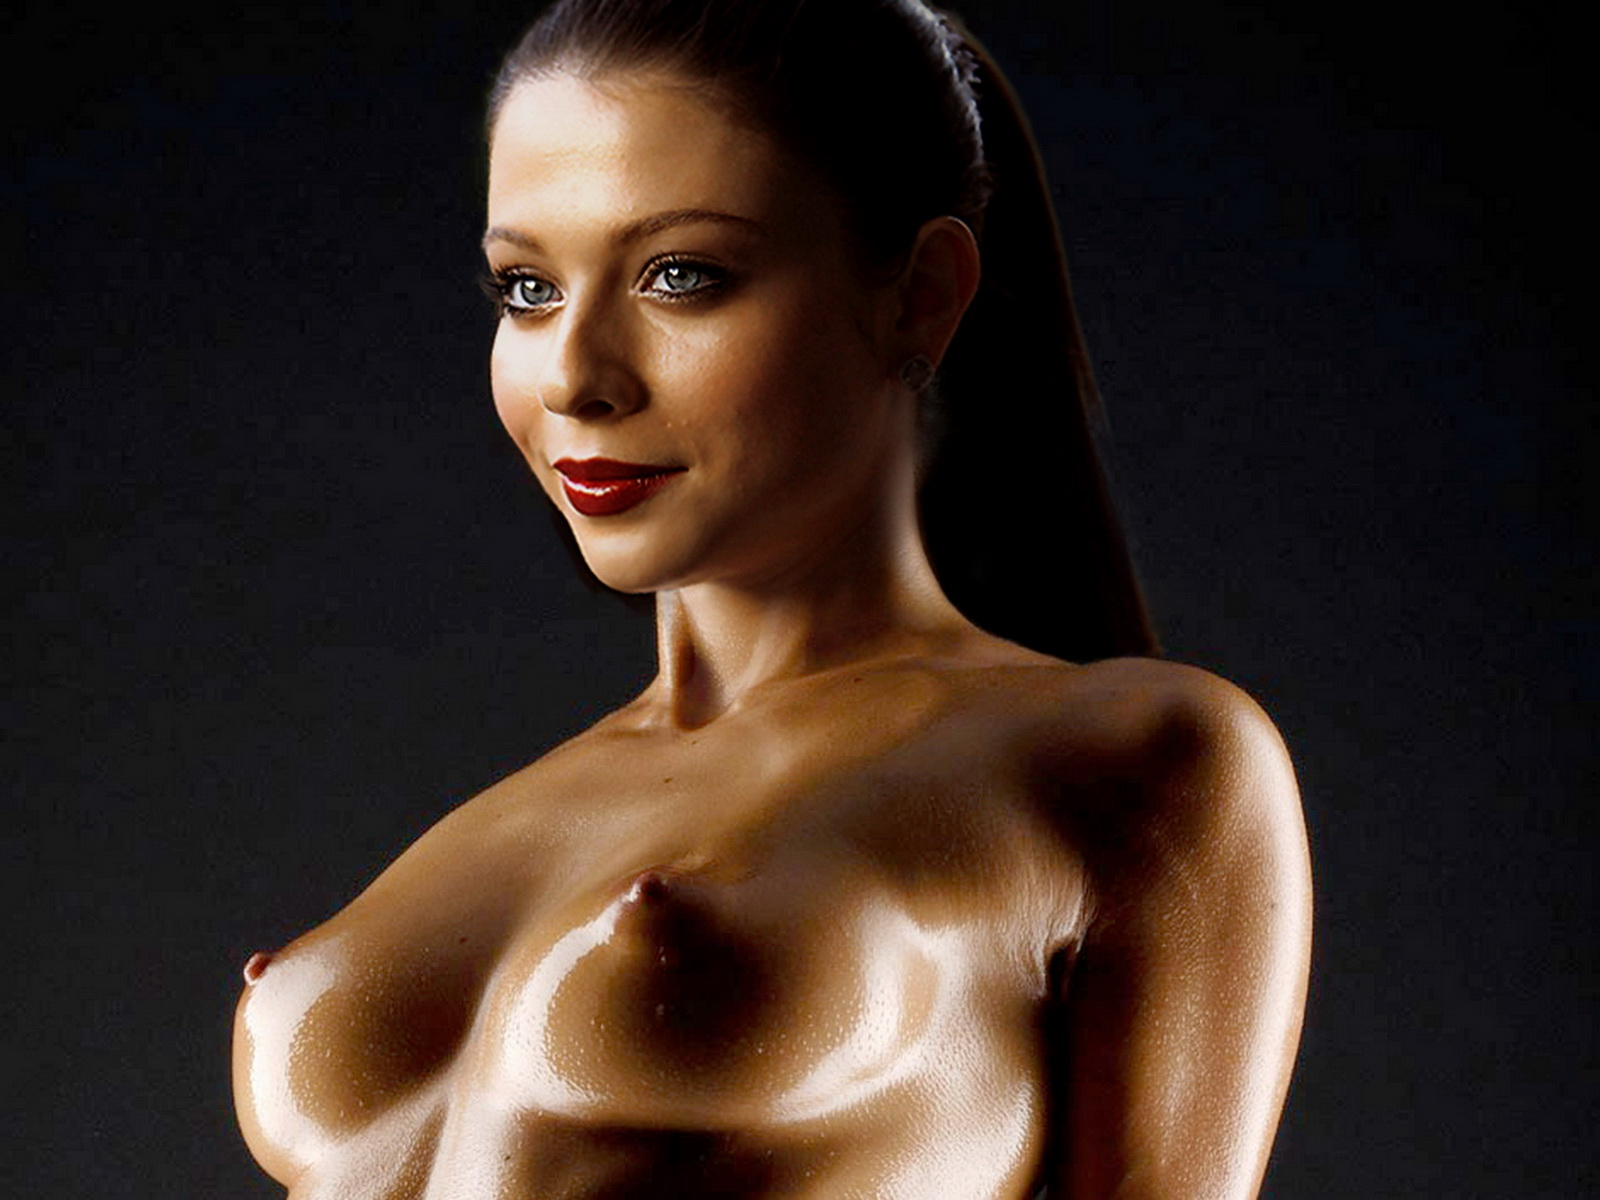 real women oiled up nude